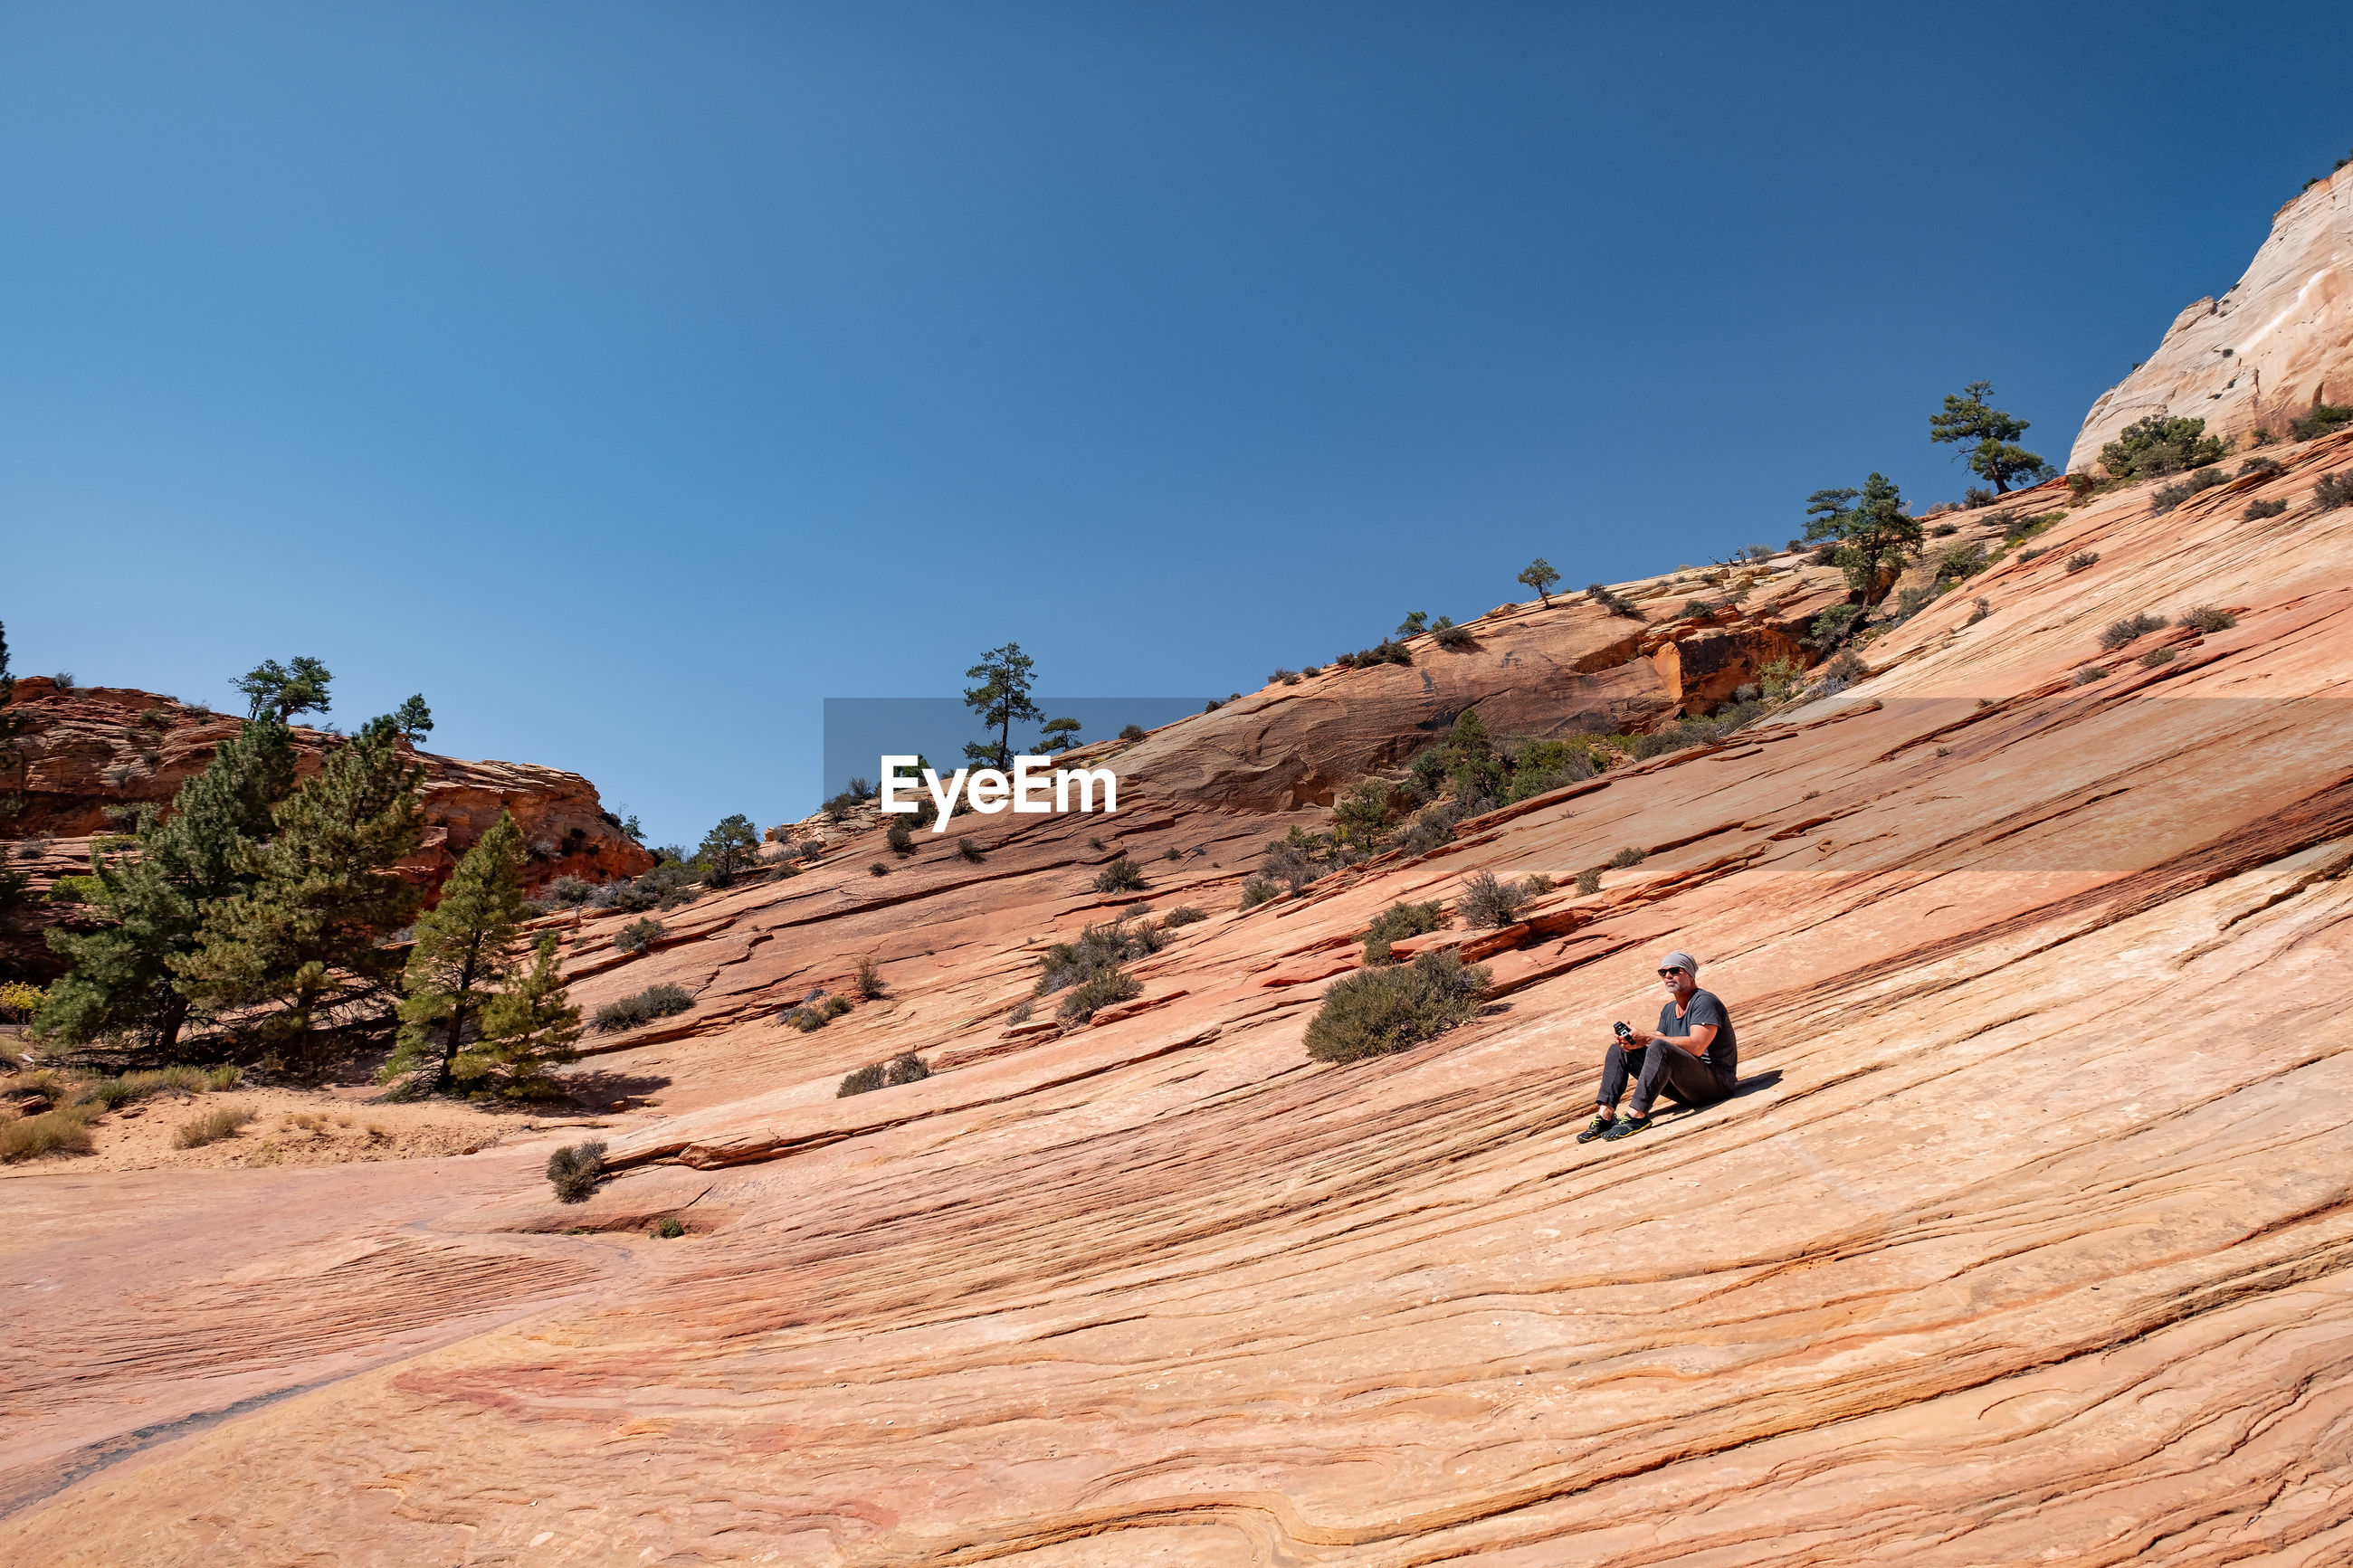 Man on rock mountain against clear blue sky